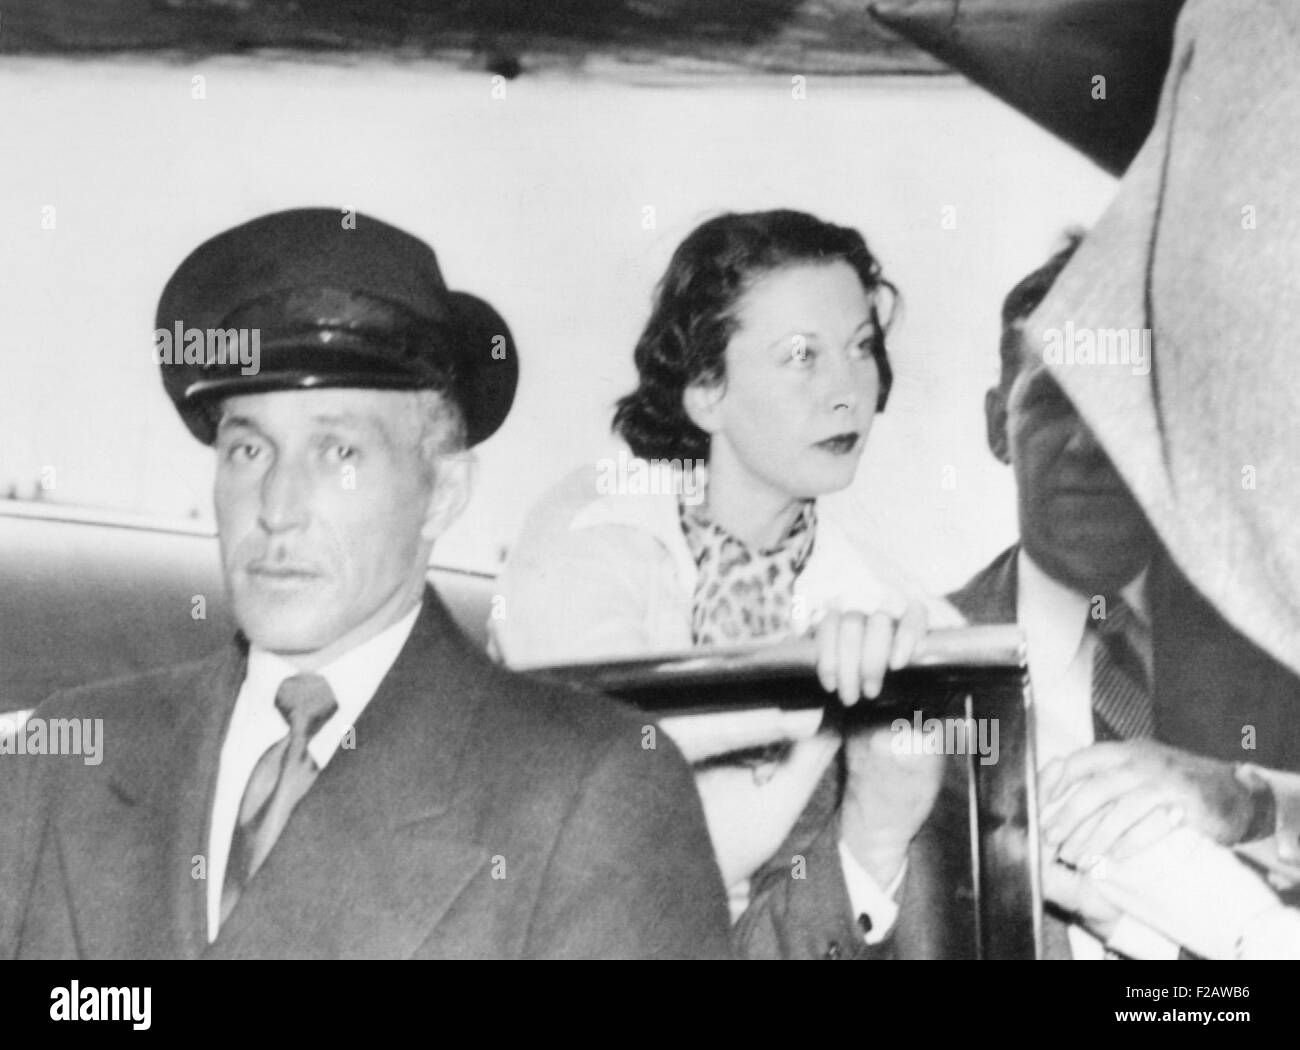 Vivien Leigh, suffering from bi-polar disorder, was accompanied by Laurence Olivier (right). March 19, 1953. They - Stock Image